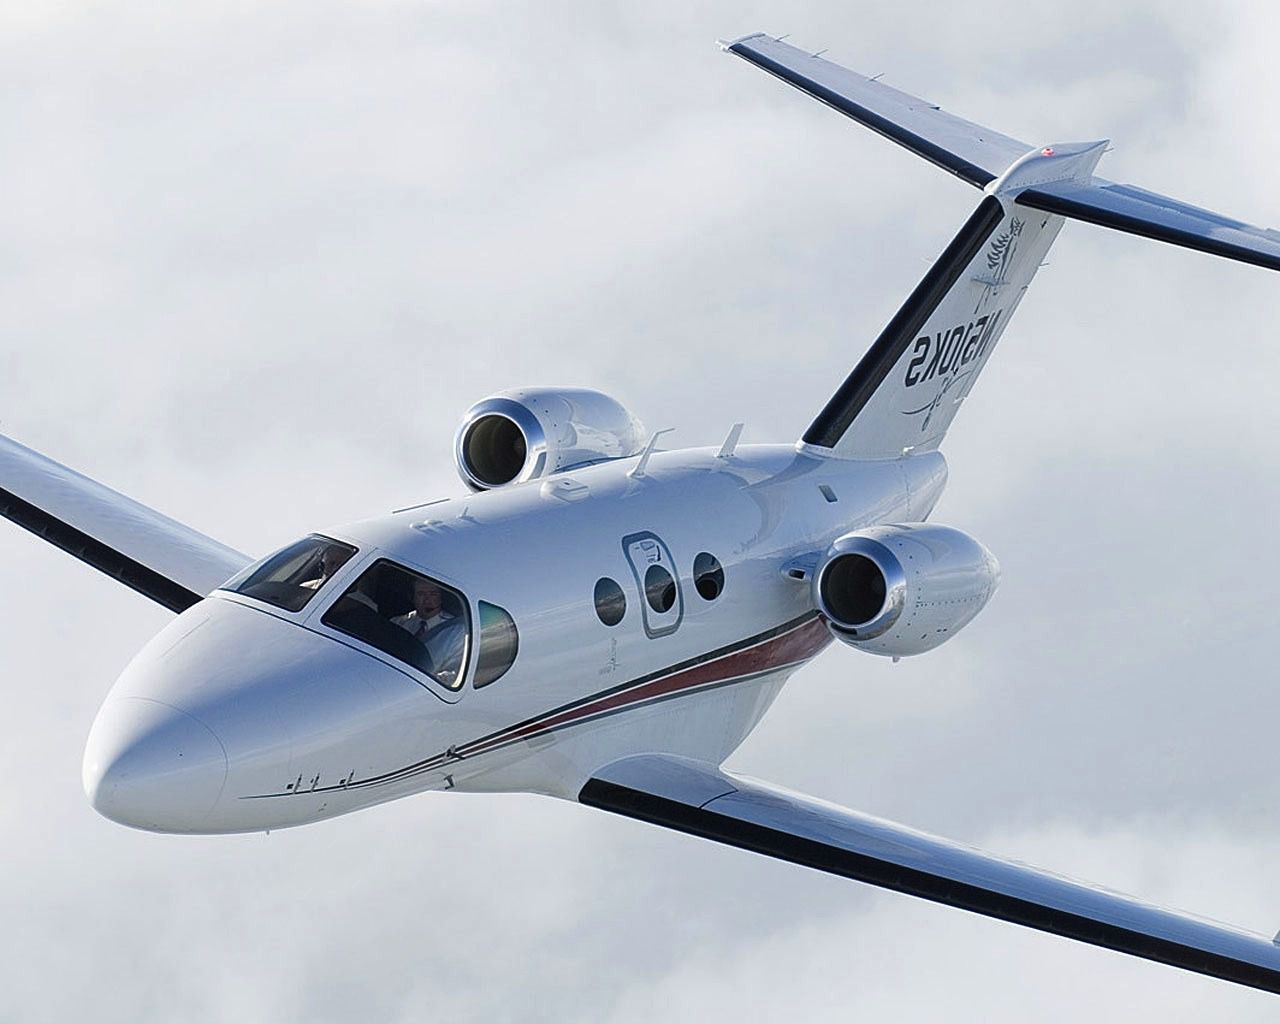 DO YOU INSURE YOUR AIRCRAFT WITHIN A MANAGED FLEET?